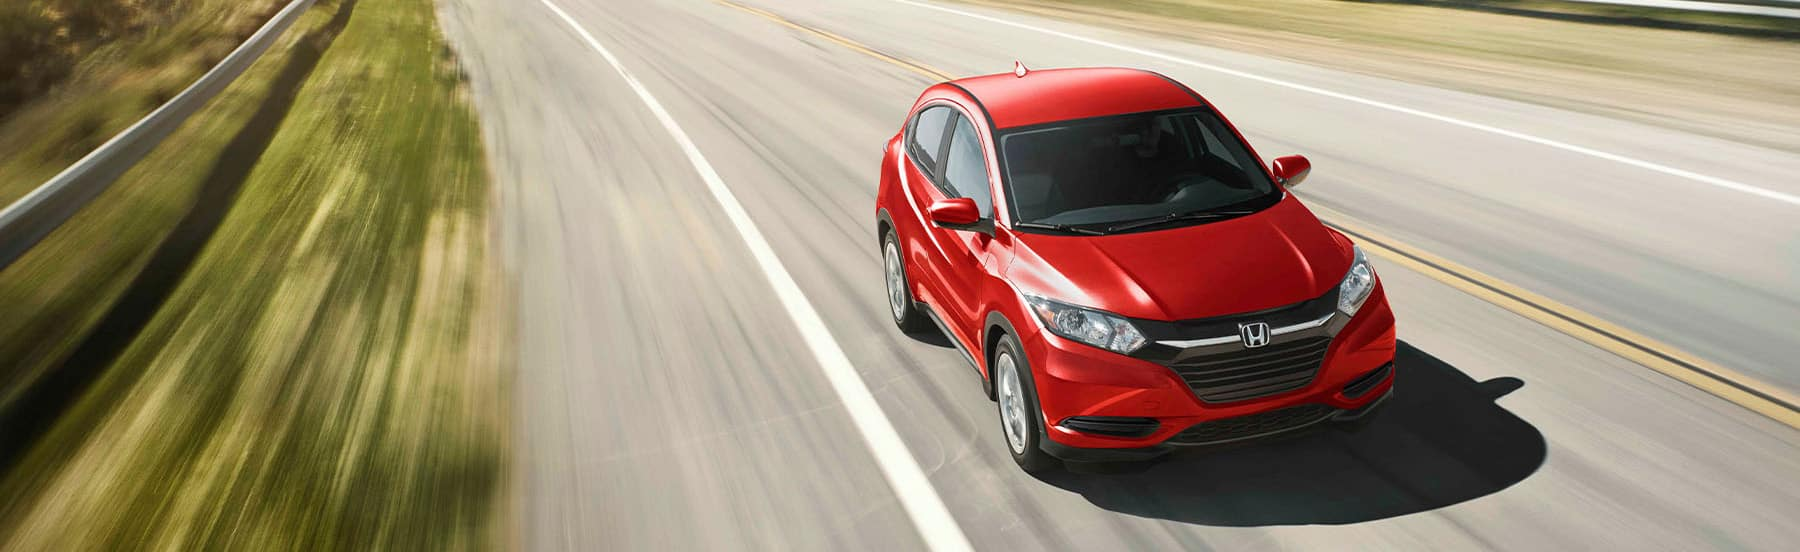 Used Honda HR-V driving down the road